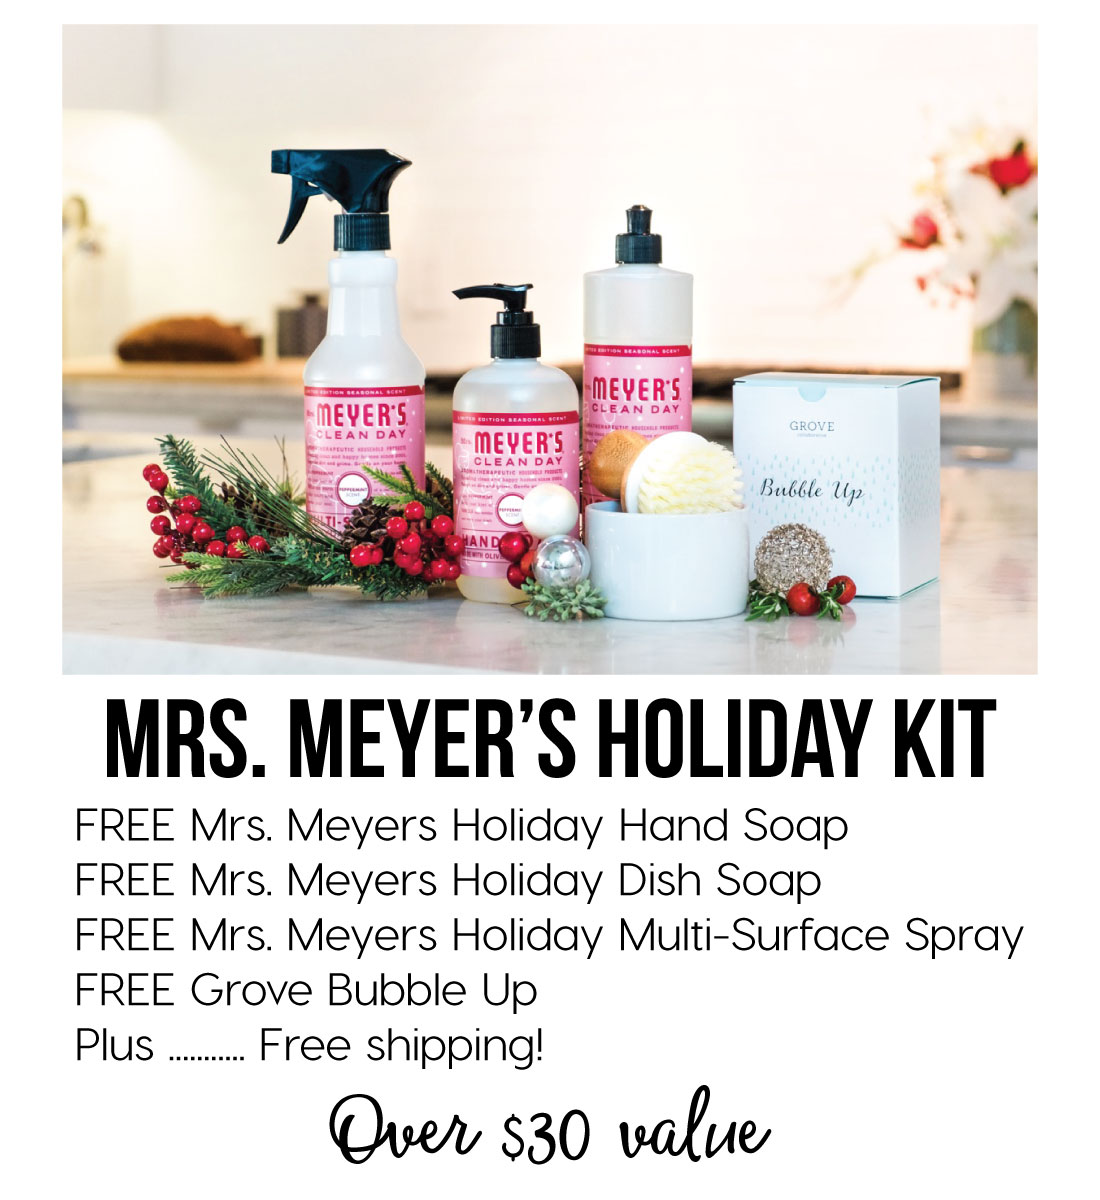 Awesome Mrs. Meyer's Holiday Kit Offer